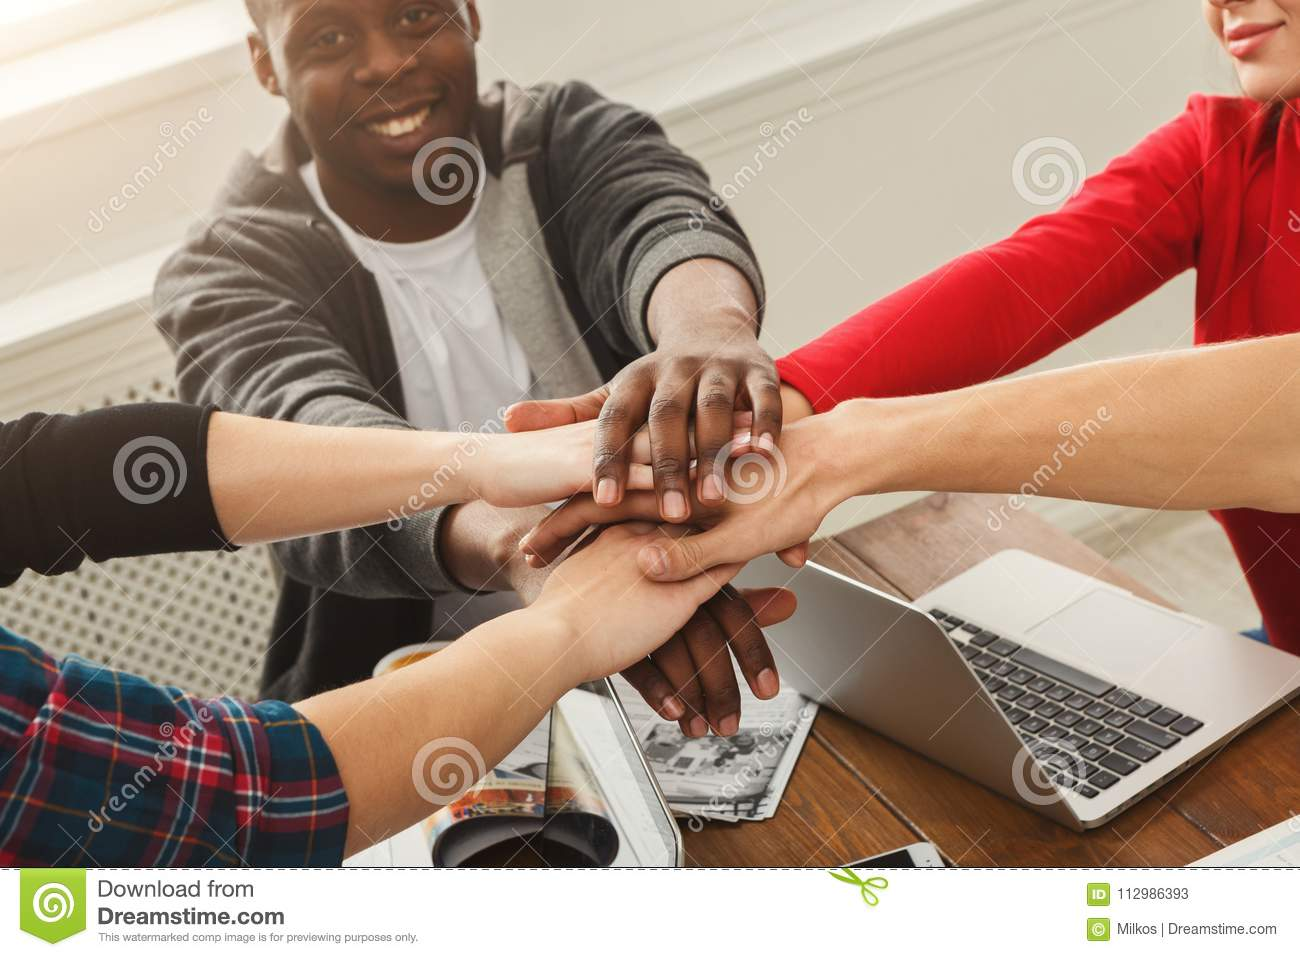 Business people at working table putting hands together